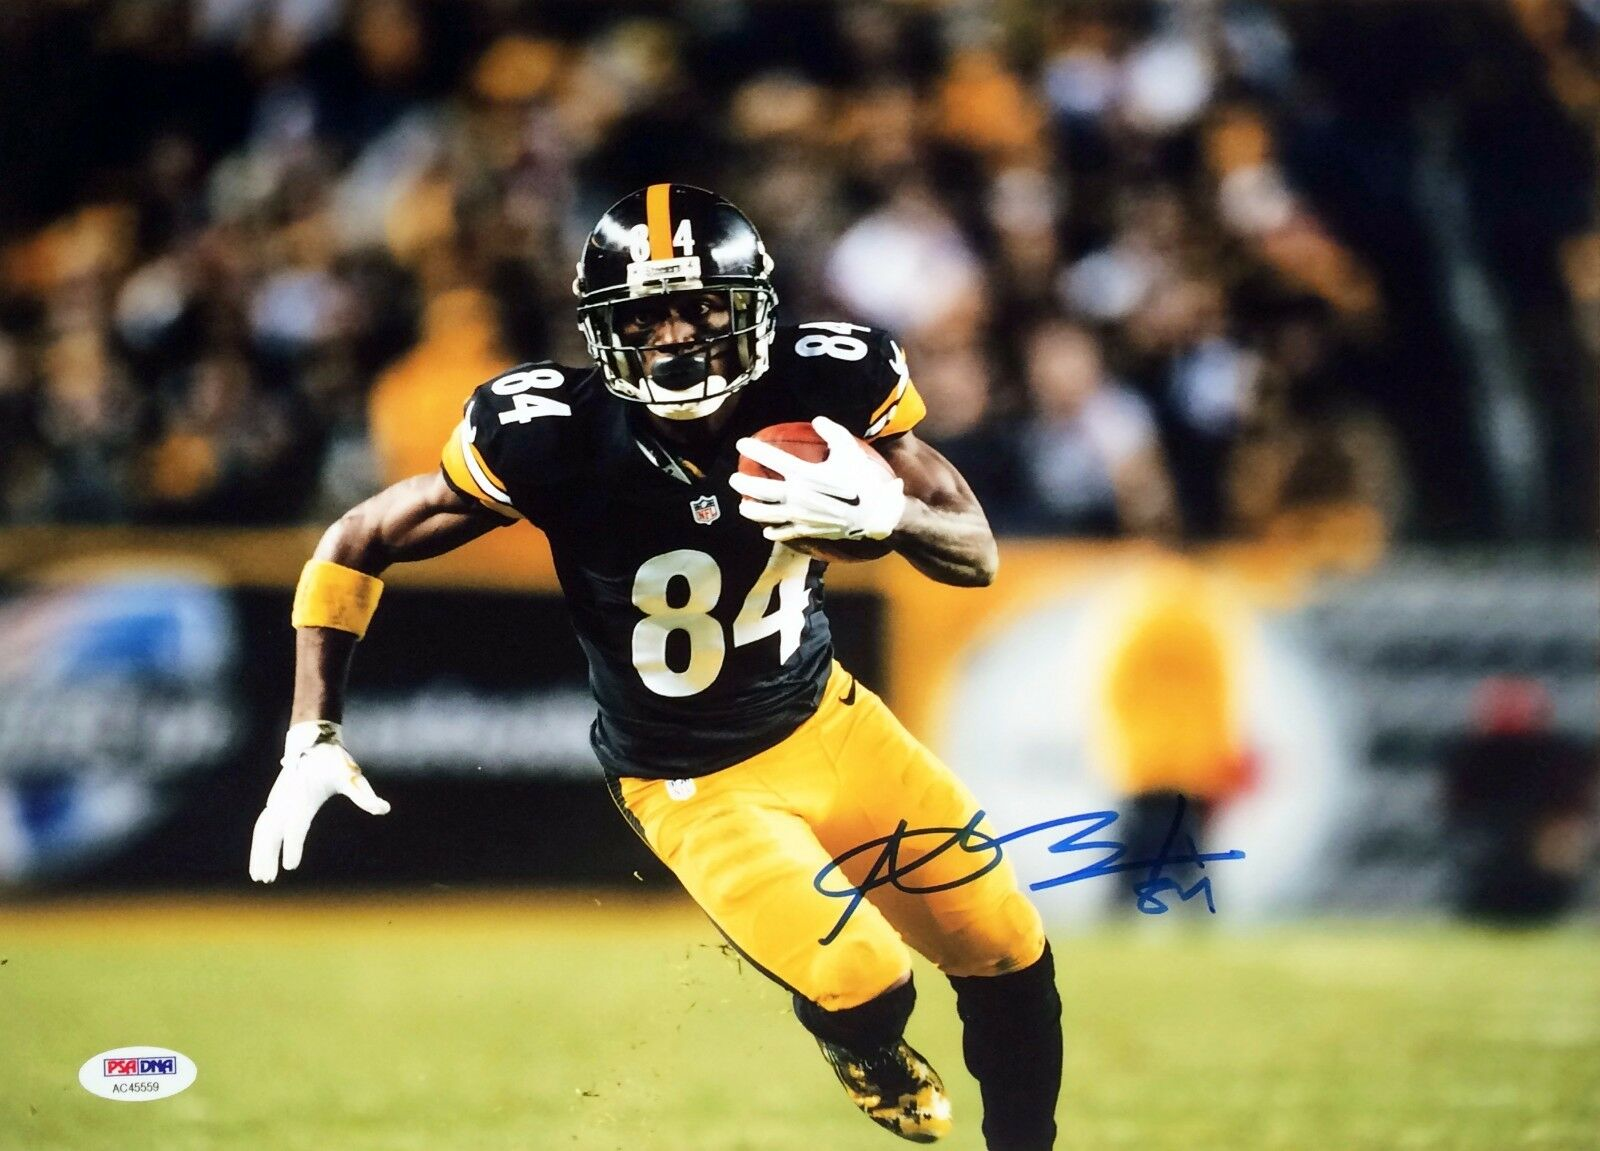 Antonio Brown Pittsburgh Steelers Signed 11x14 photo PSA/DNA Cert # AC 45559